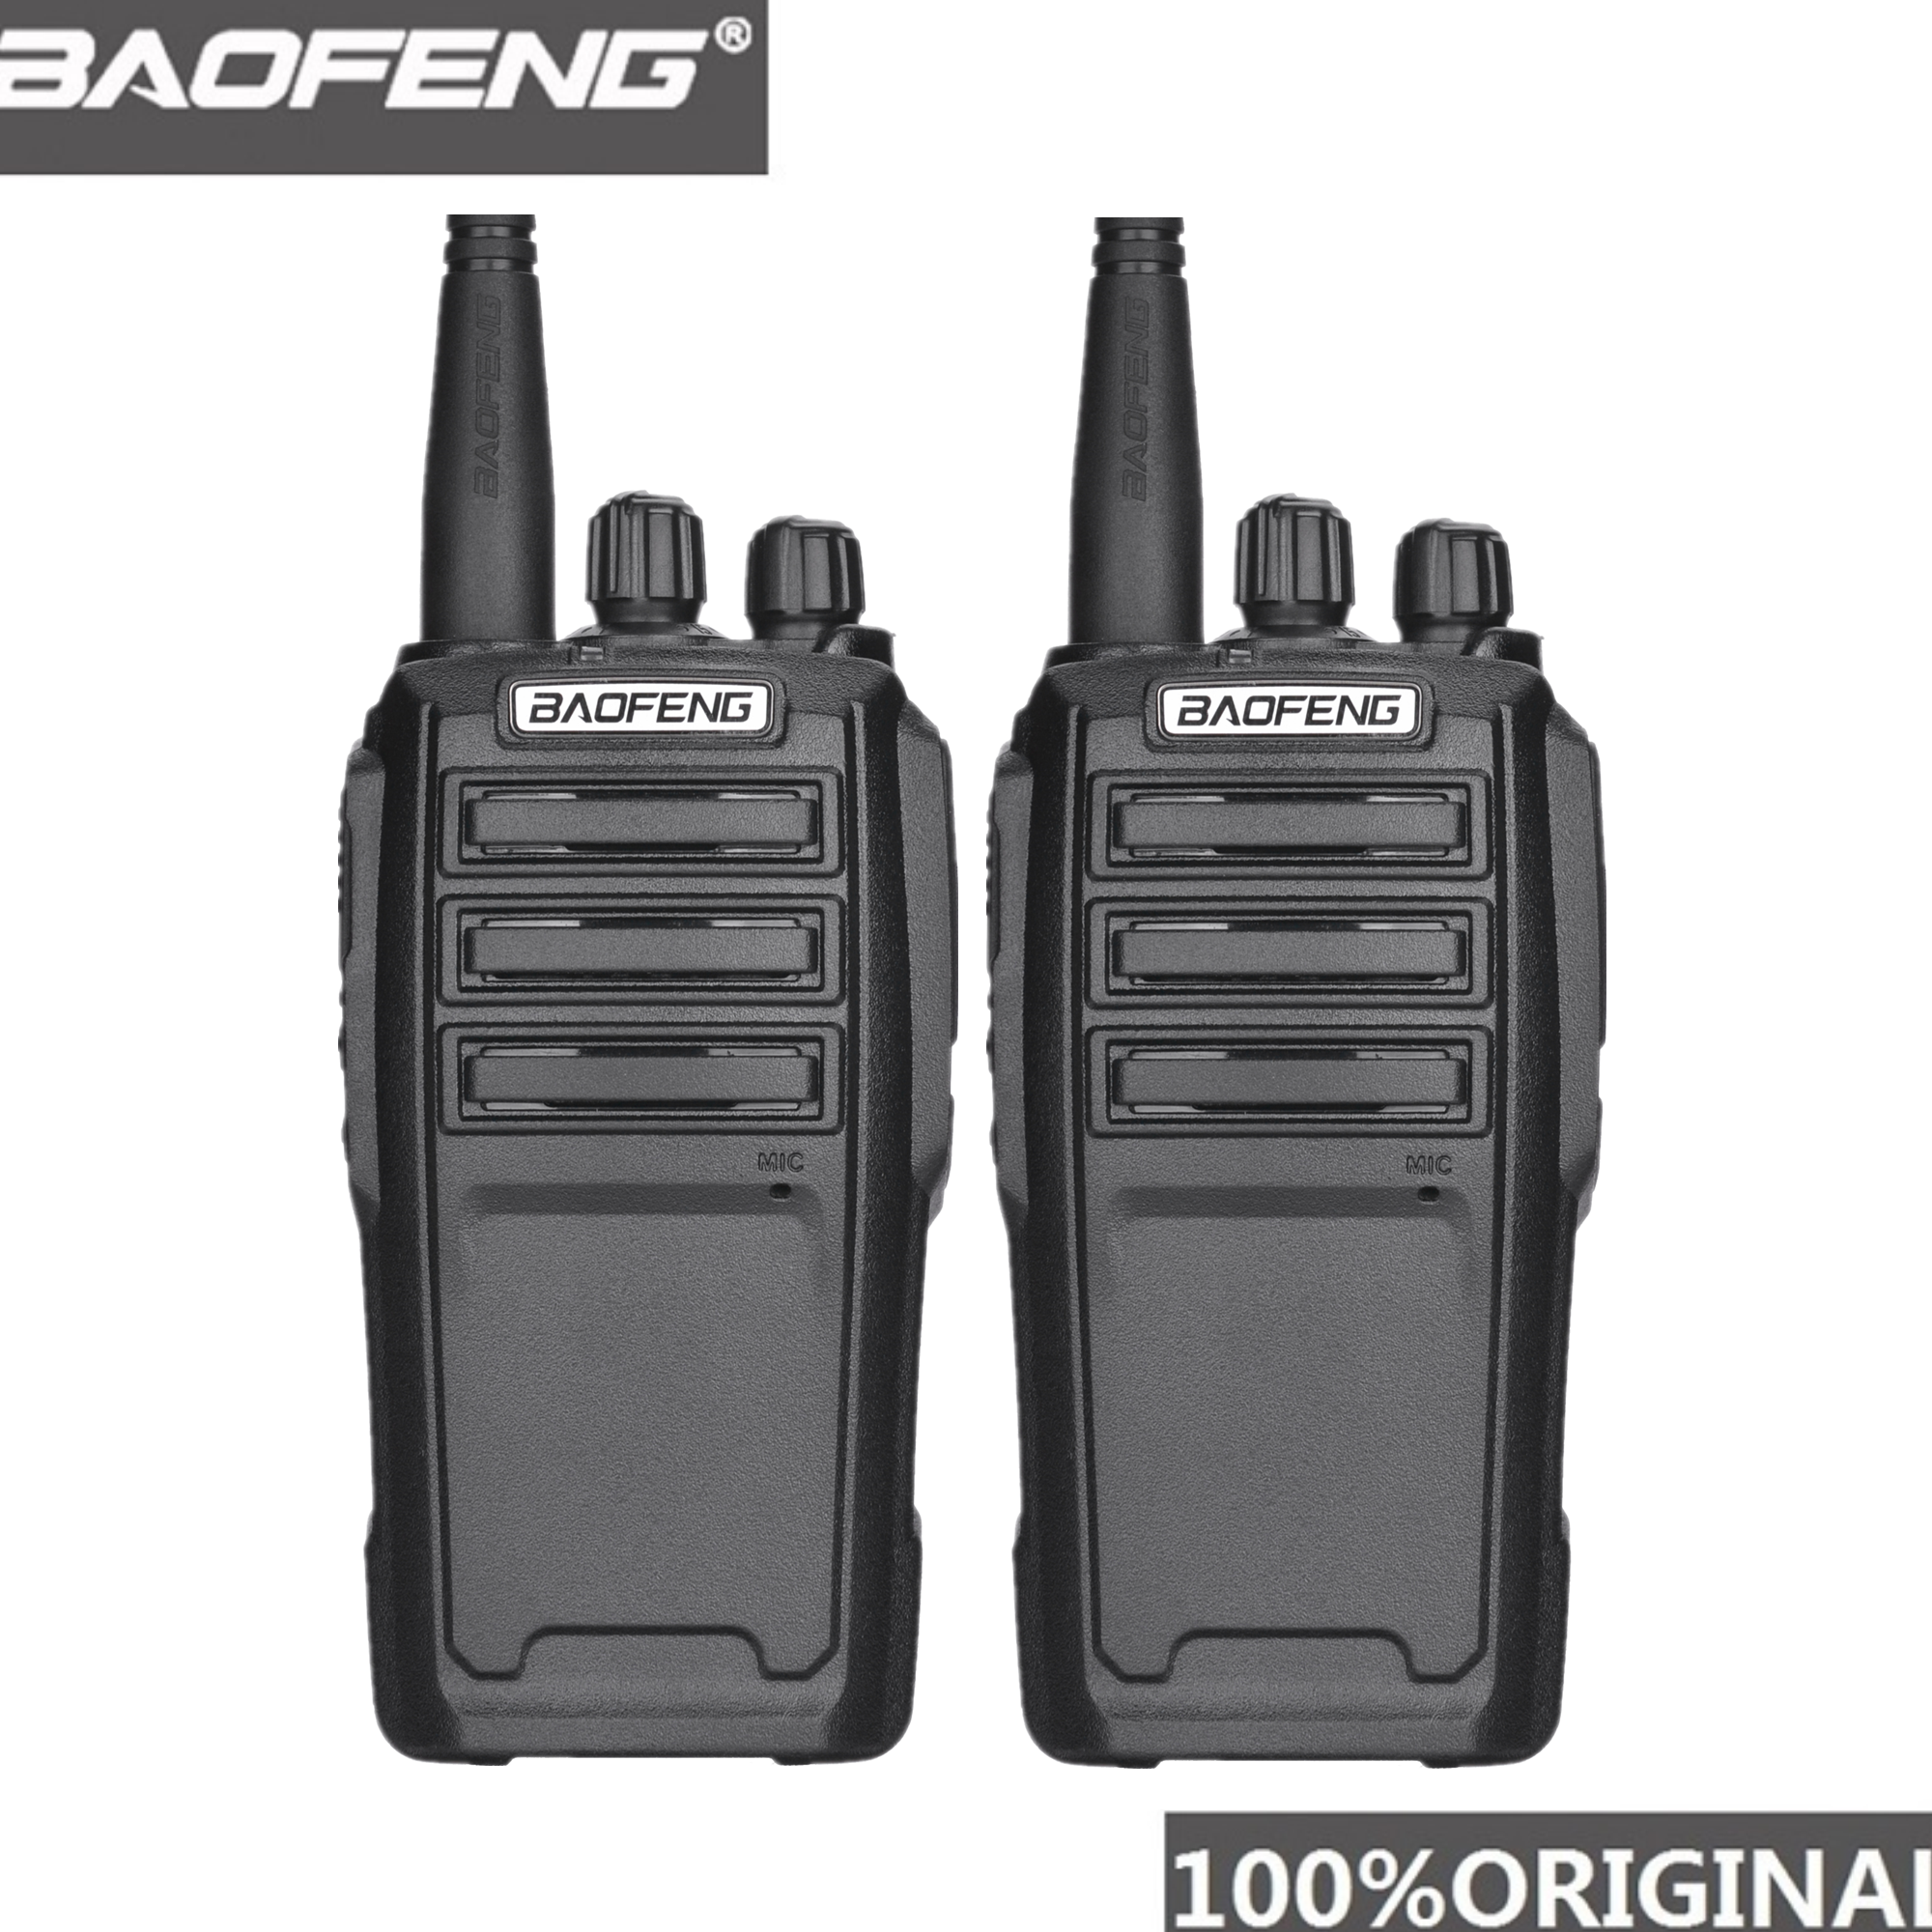 2PCS Baofeng UV 6 8W Ham Radio Security Guard Equipment Two Way Radio Encrypted Handheld Walkie Talkie Ham Radio HF Transceiver-in Walkie Talkie from Cellphones & Telecommunications